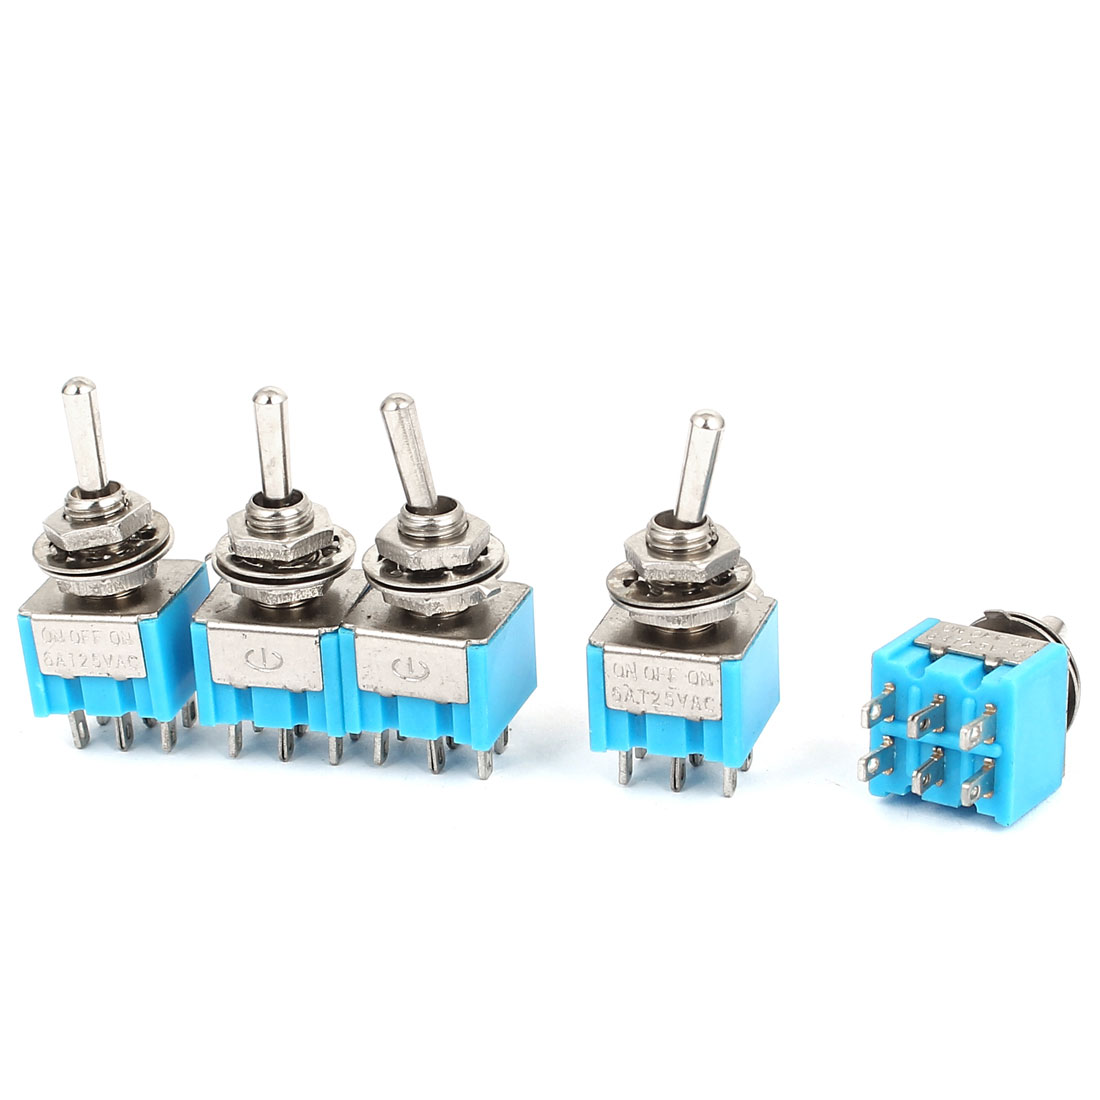 125V 6A DPDT ON OFF ON 3 Positions 6 Terminals Toggle Switch 5 Pcs